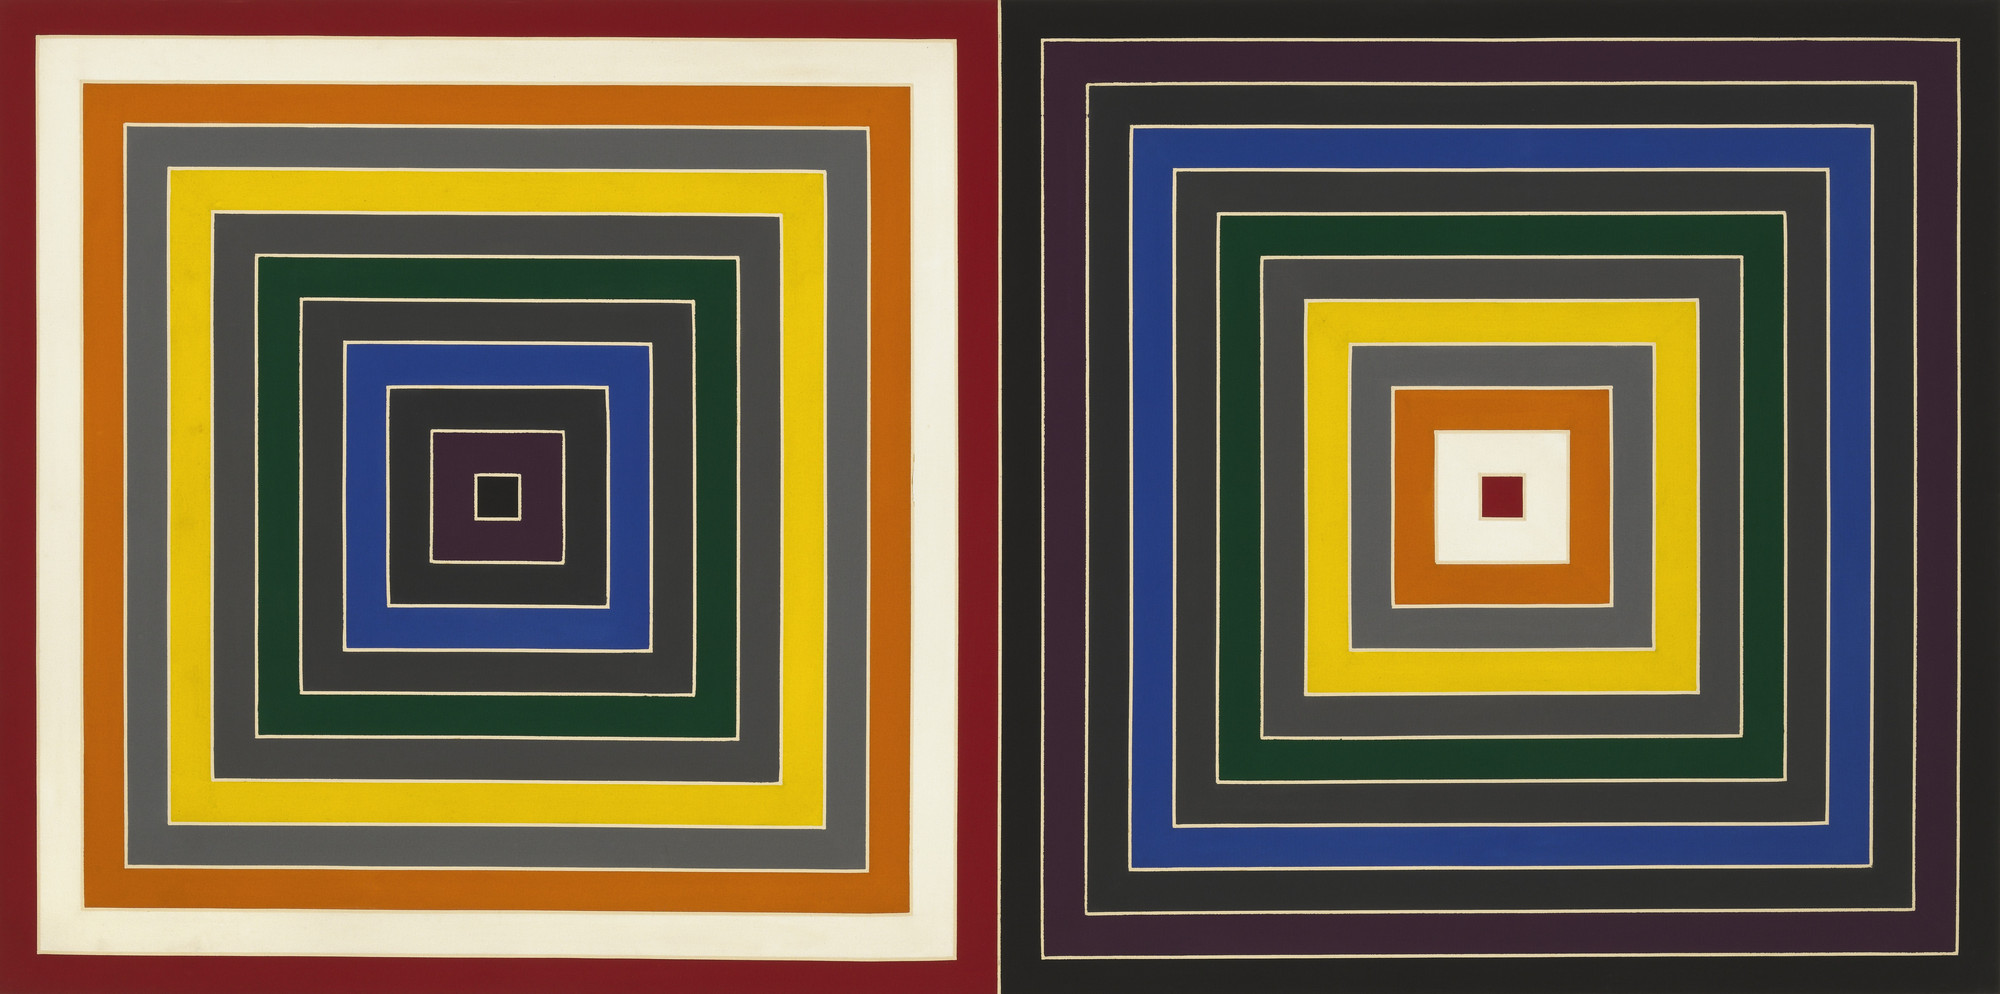 Frank Stella. Gray Scrambled Double Square. 1964